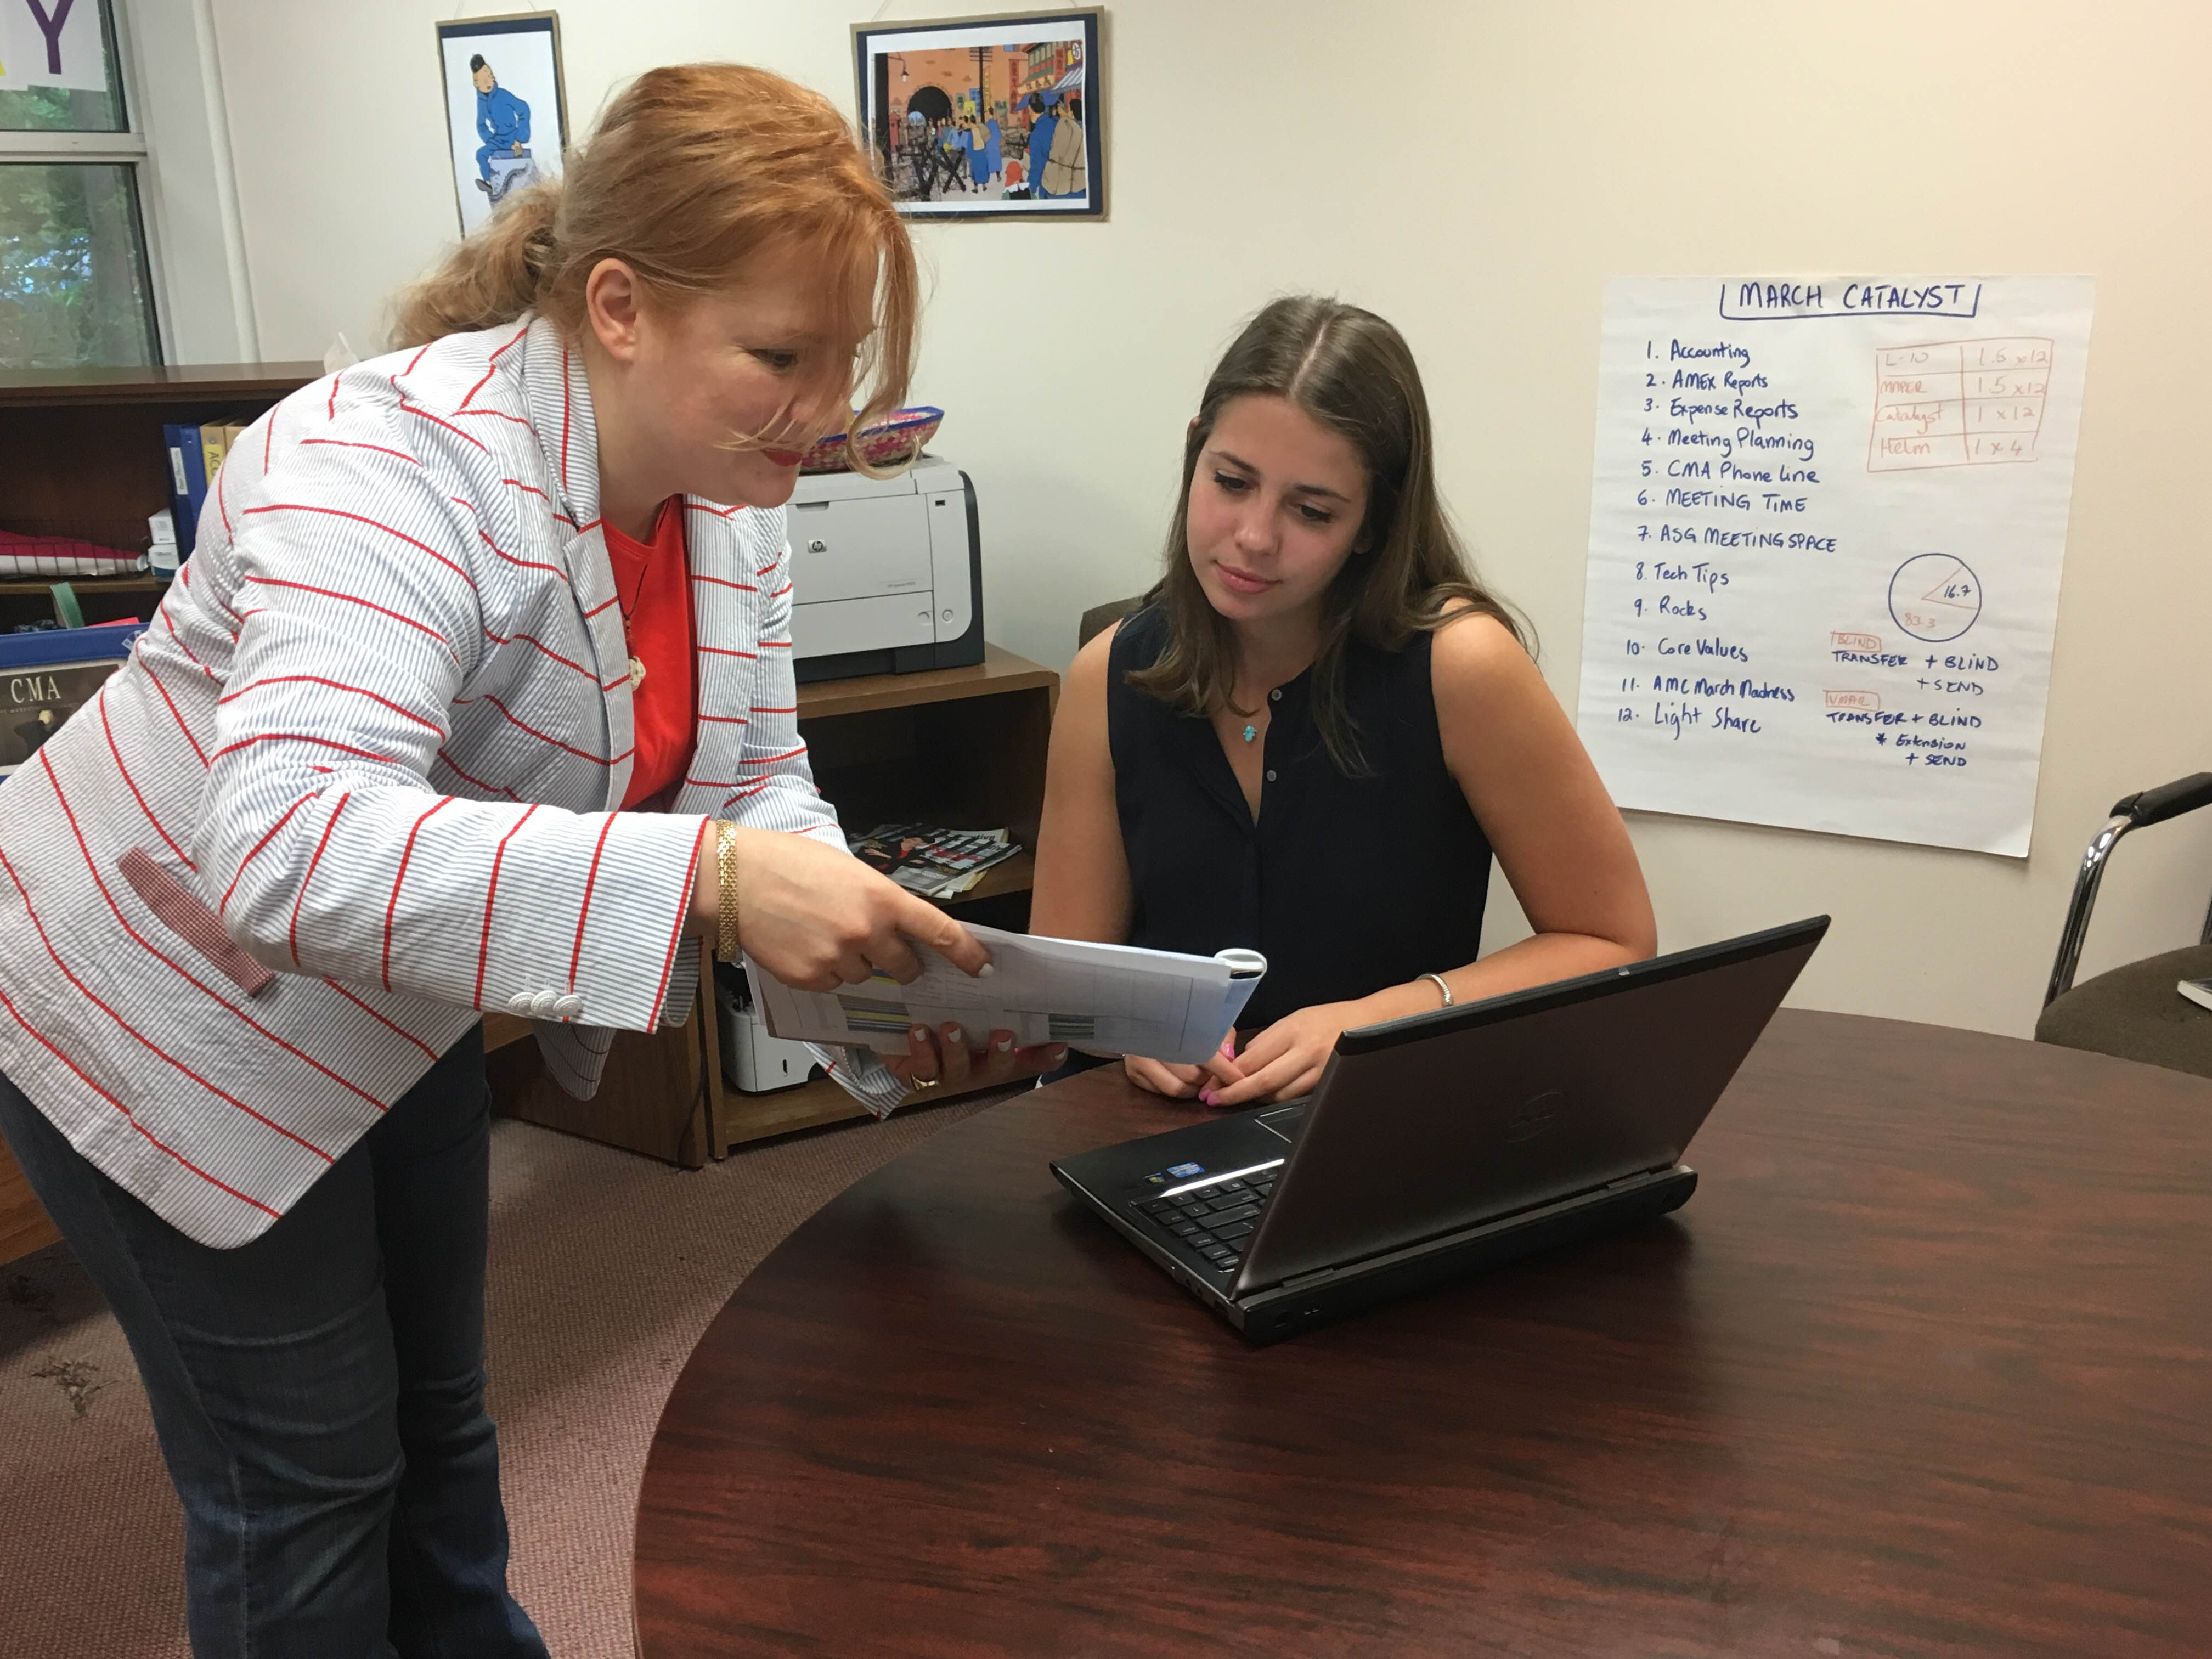 CMA Intern Jordannah Schreiber works with Gabrielle Copperwheat, director of operations on a marketing project.